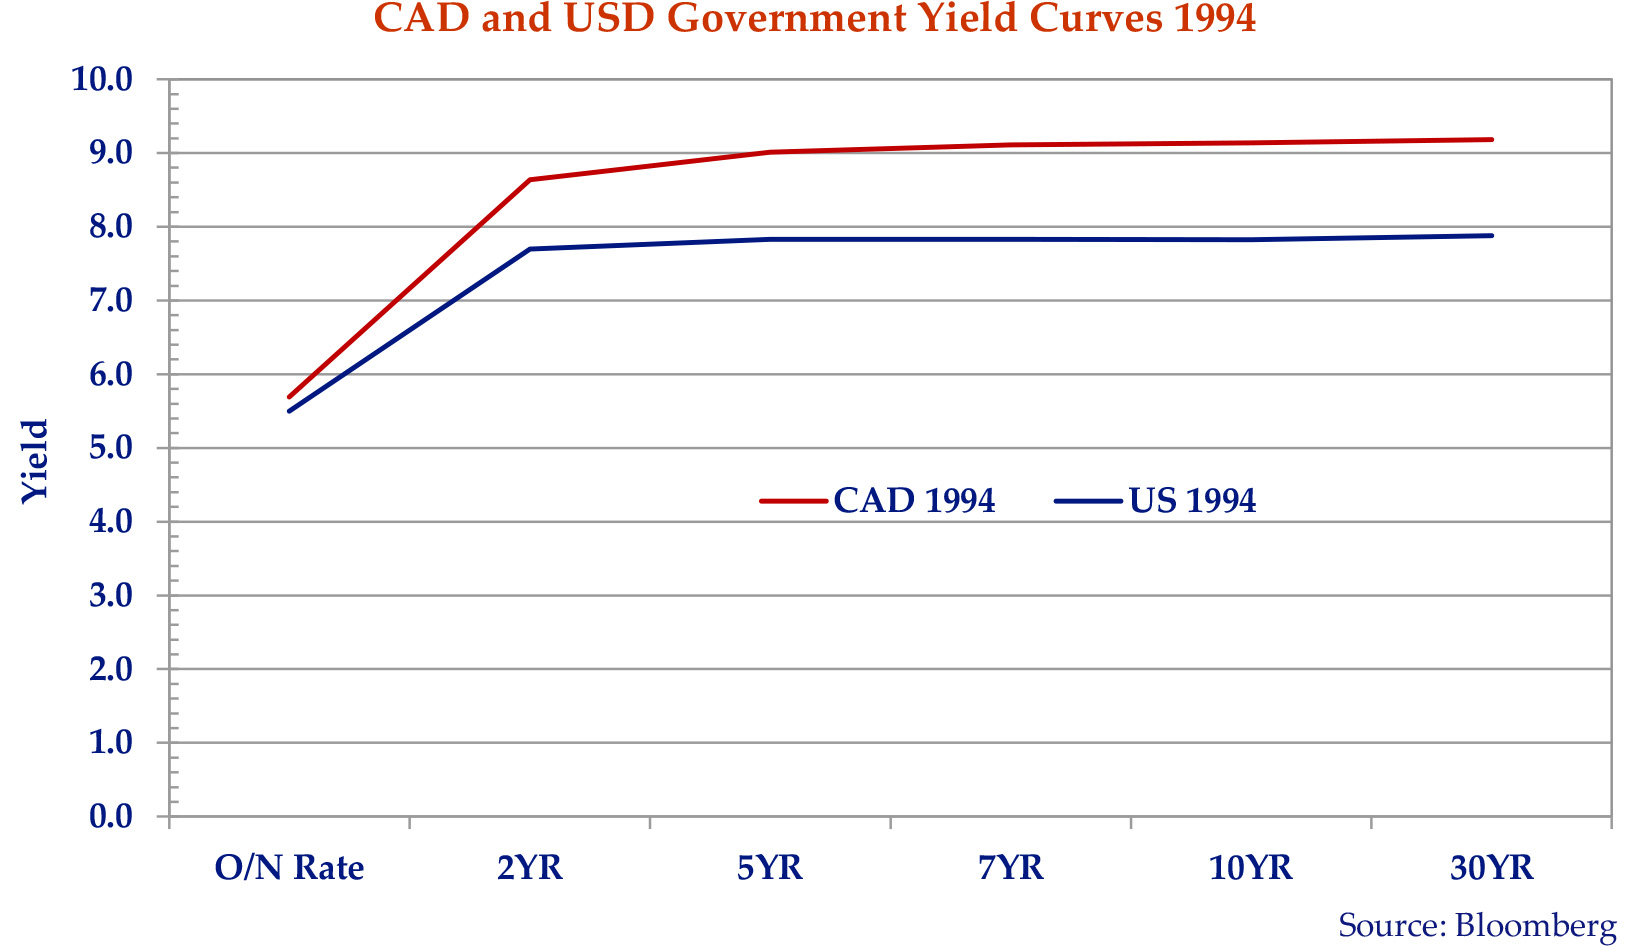 line graph showing the Canadian and unites states government yield curves of 1994.